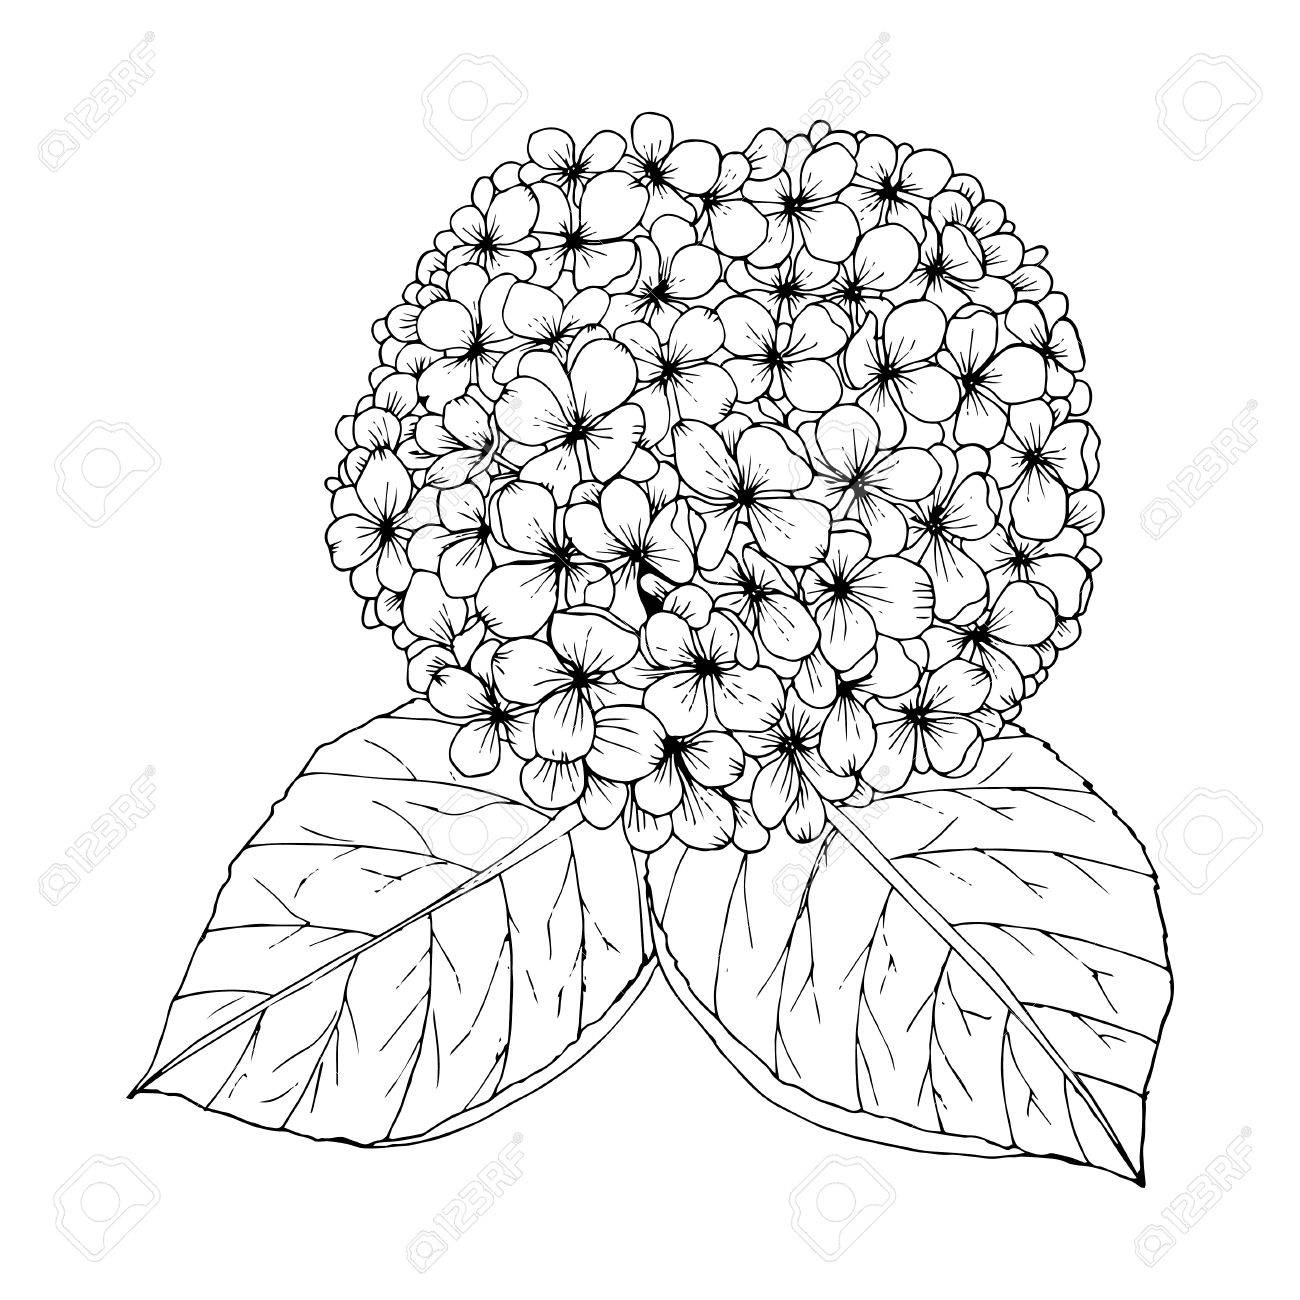 1300x1300 Coloring Page With Doodle Flowers Vector, Hydrangea. Royalty Free